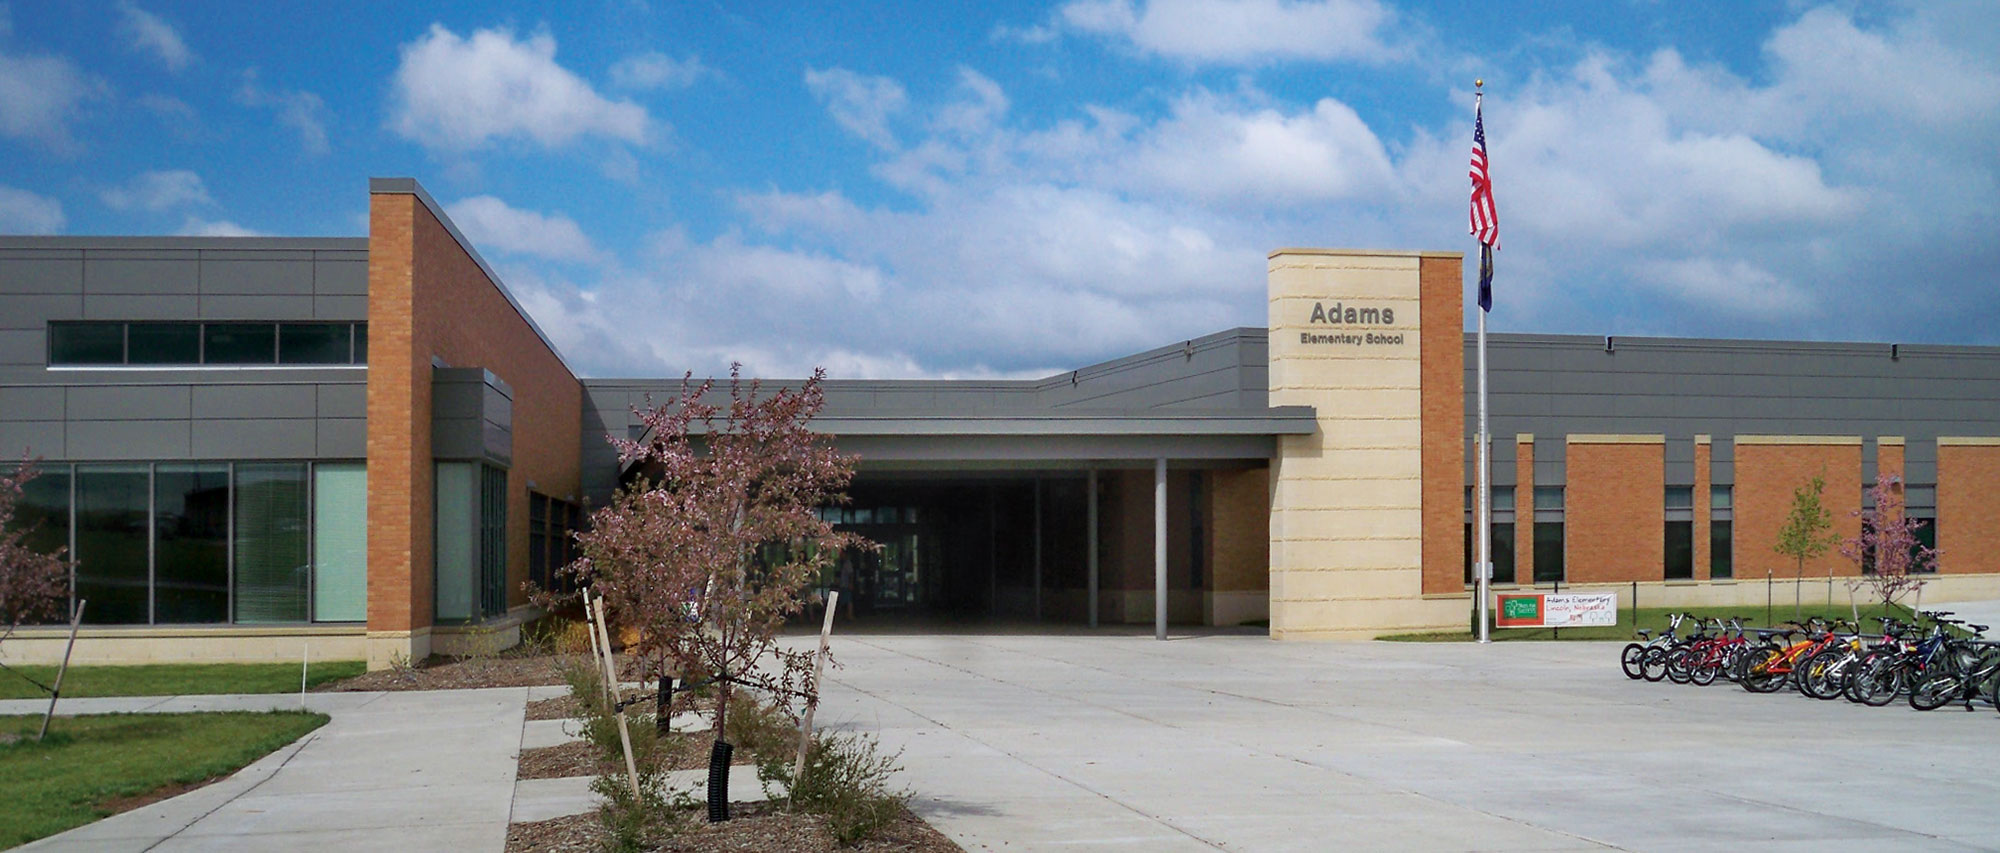 Dave Sinclair Lincoln >> Adams Elementary School | Sinclair Hille Architects ...